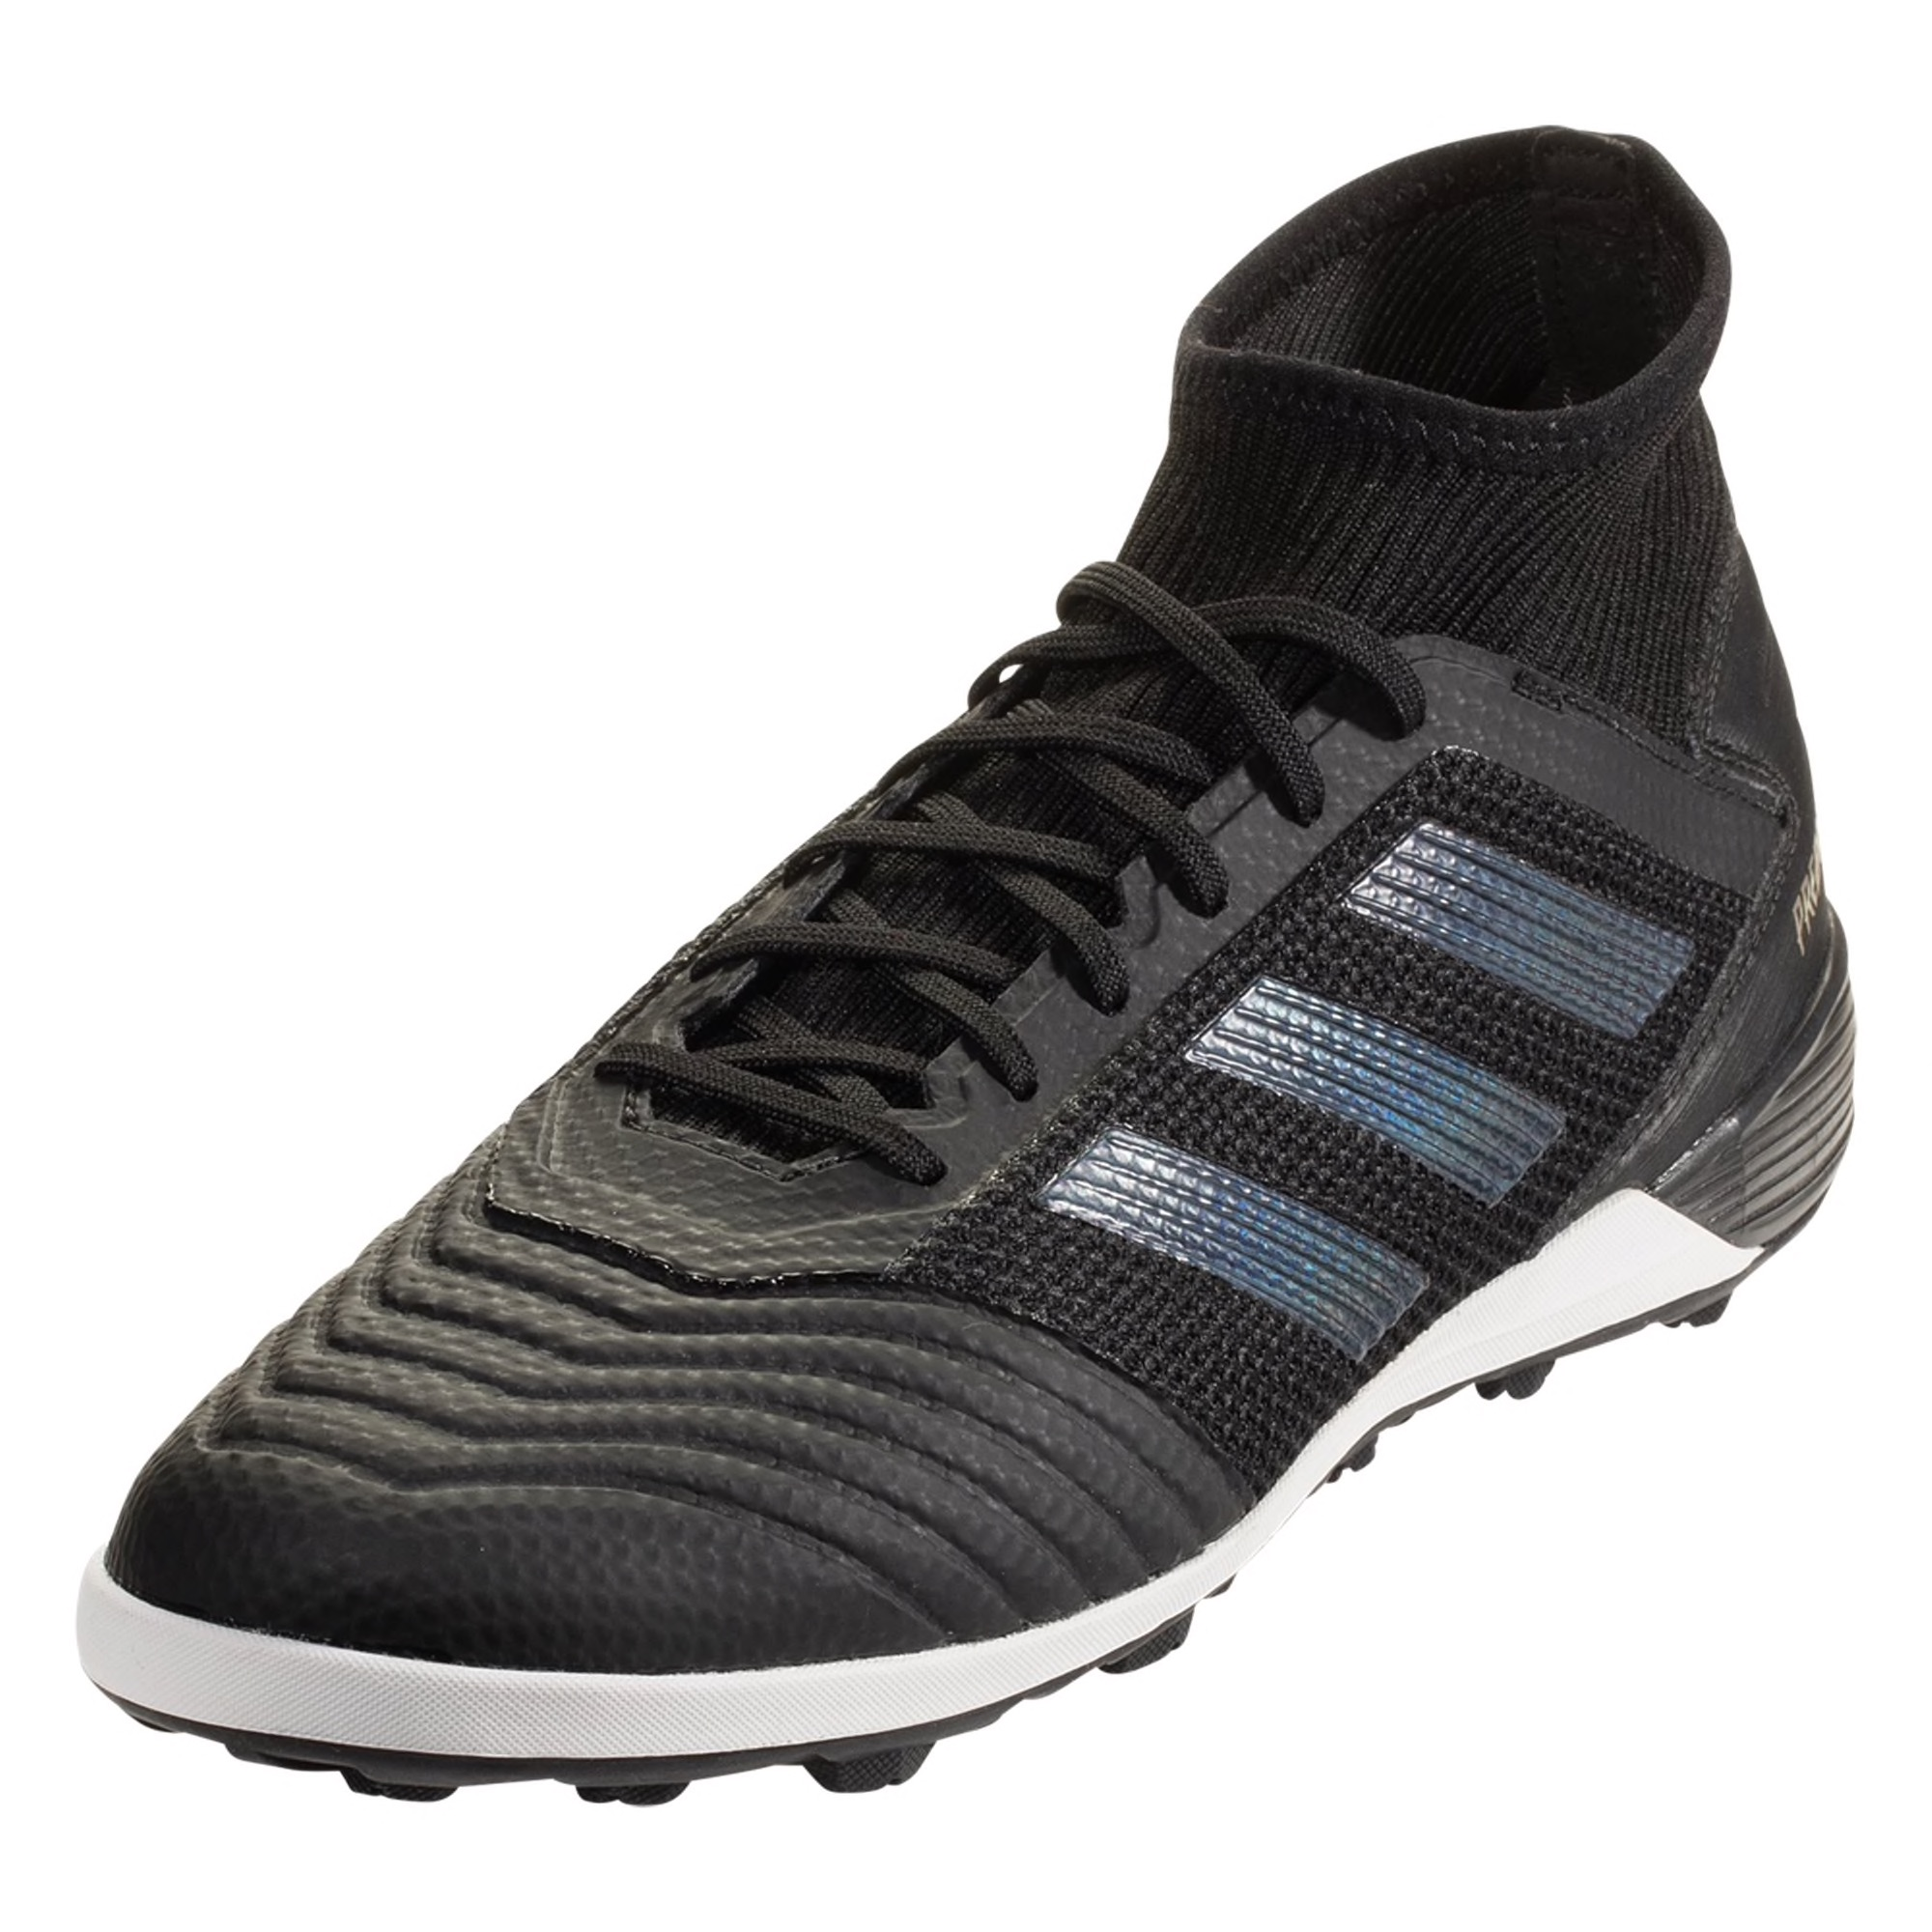 adidas Predator Tango 19.3 TF Artificial Turf Soccer Shoe - Black / Black / Gold